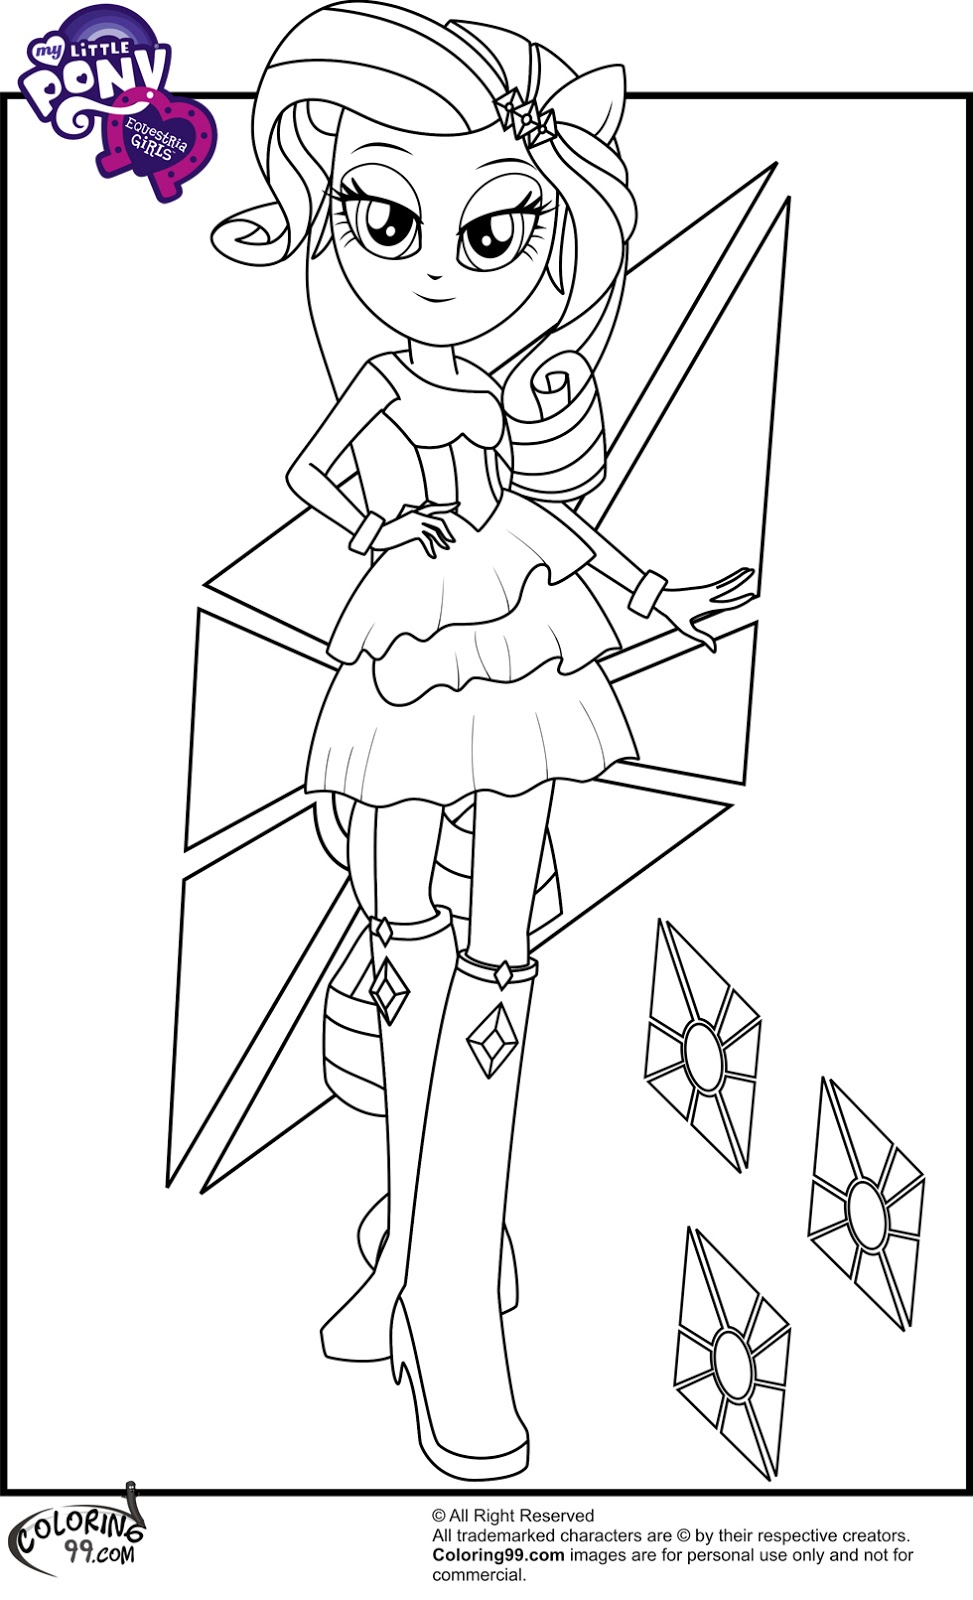 Coloring pages beatitudes - My Little Pony Equestria Girls Coloring